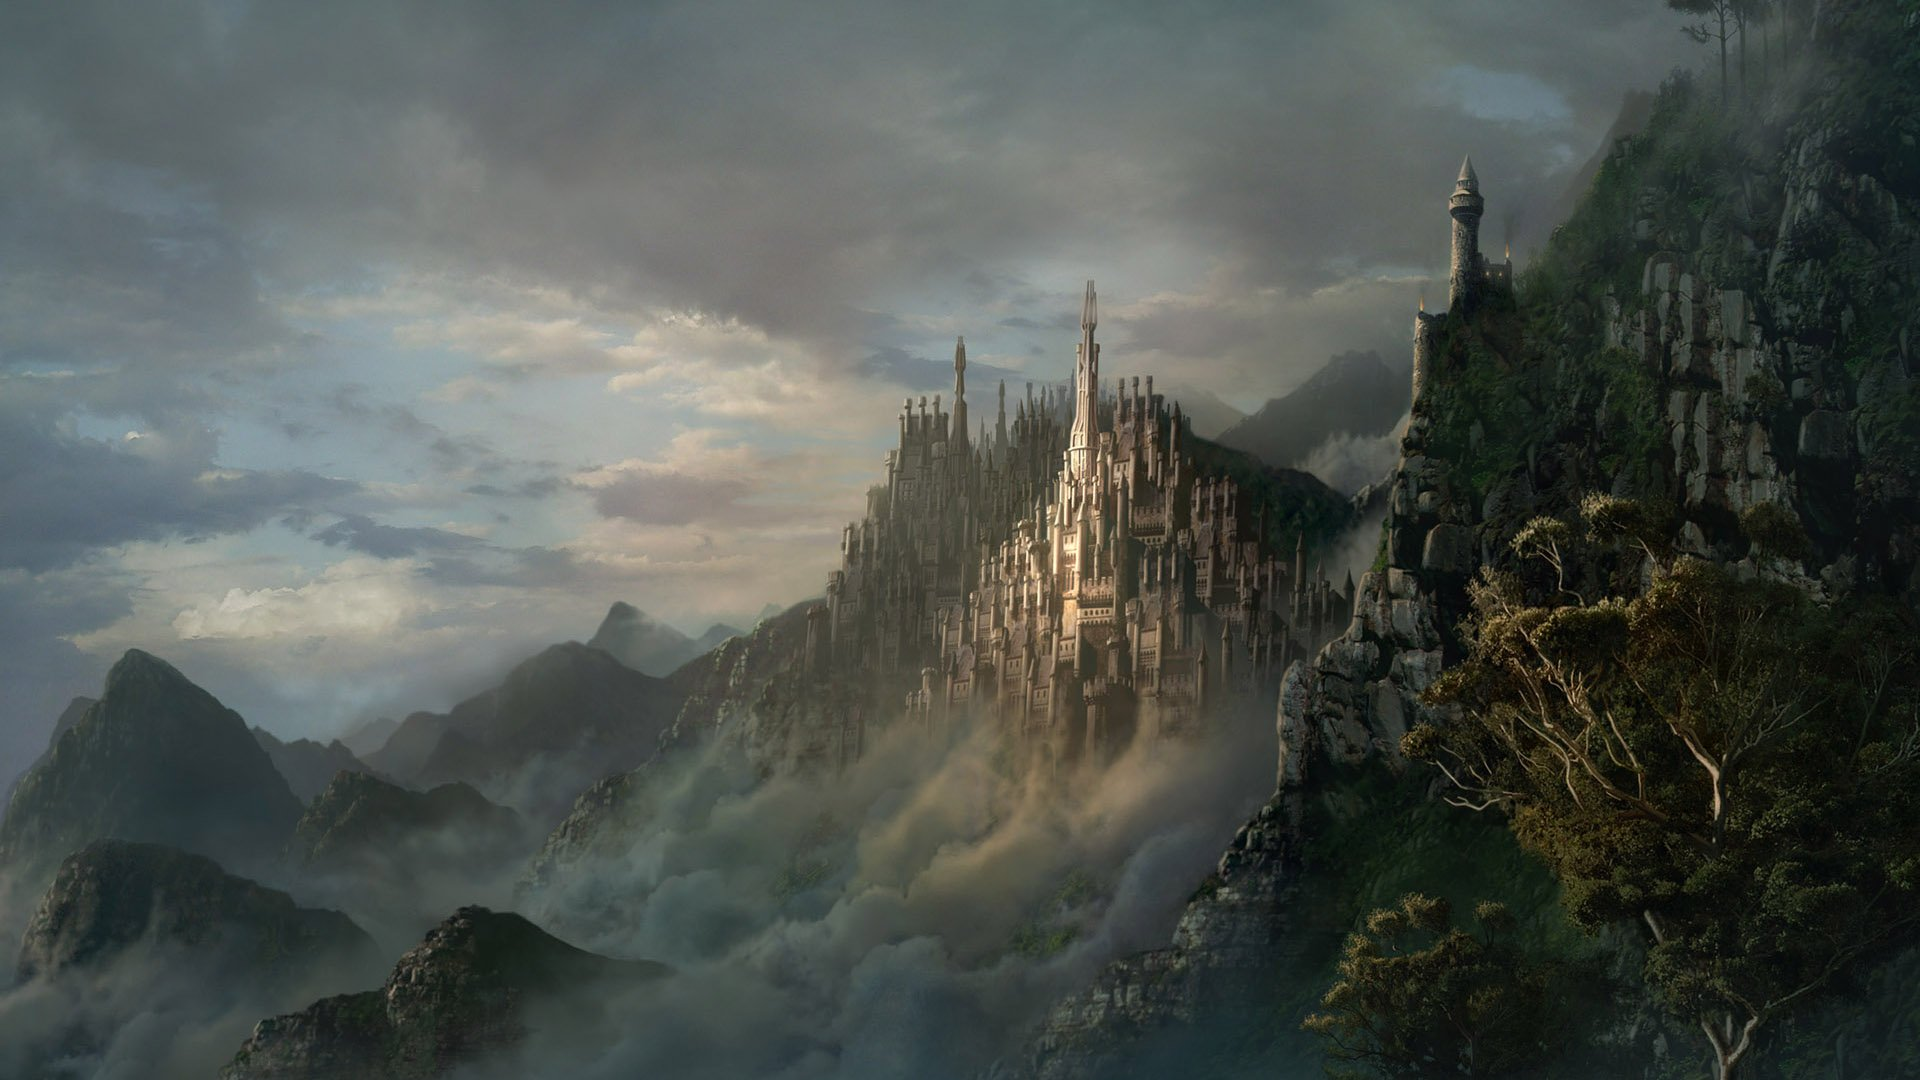 771-wallpaper-castle-background-dark-fantasy-definition-high-images